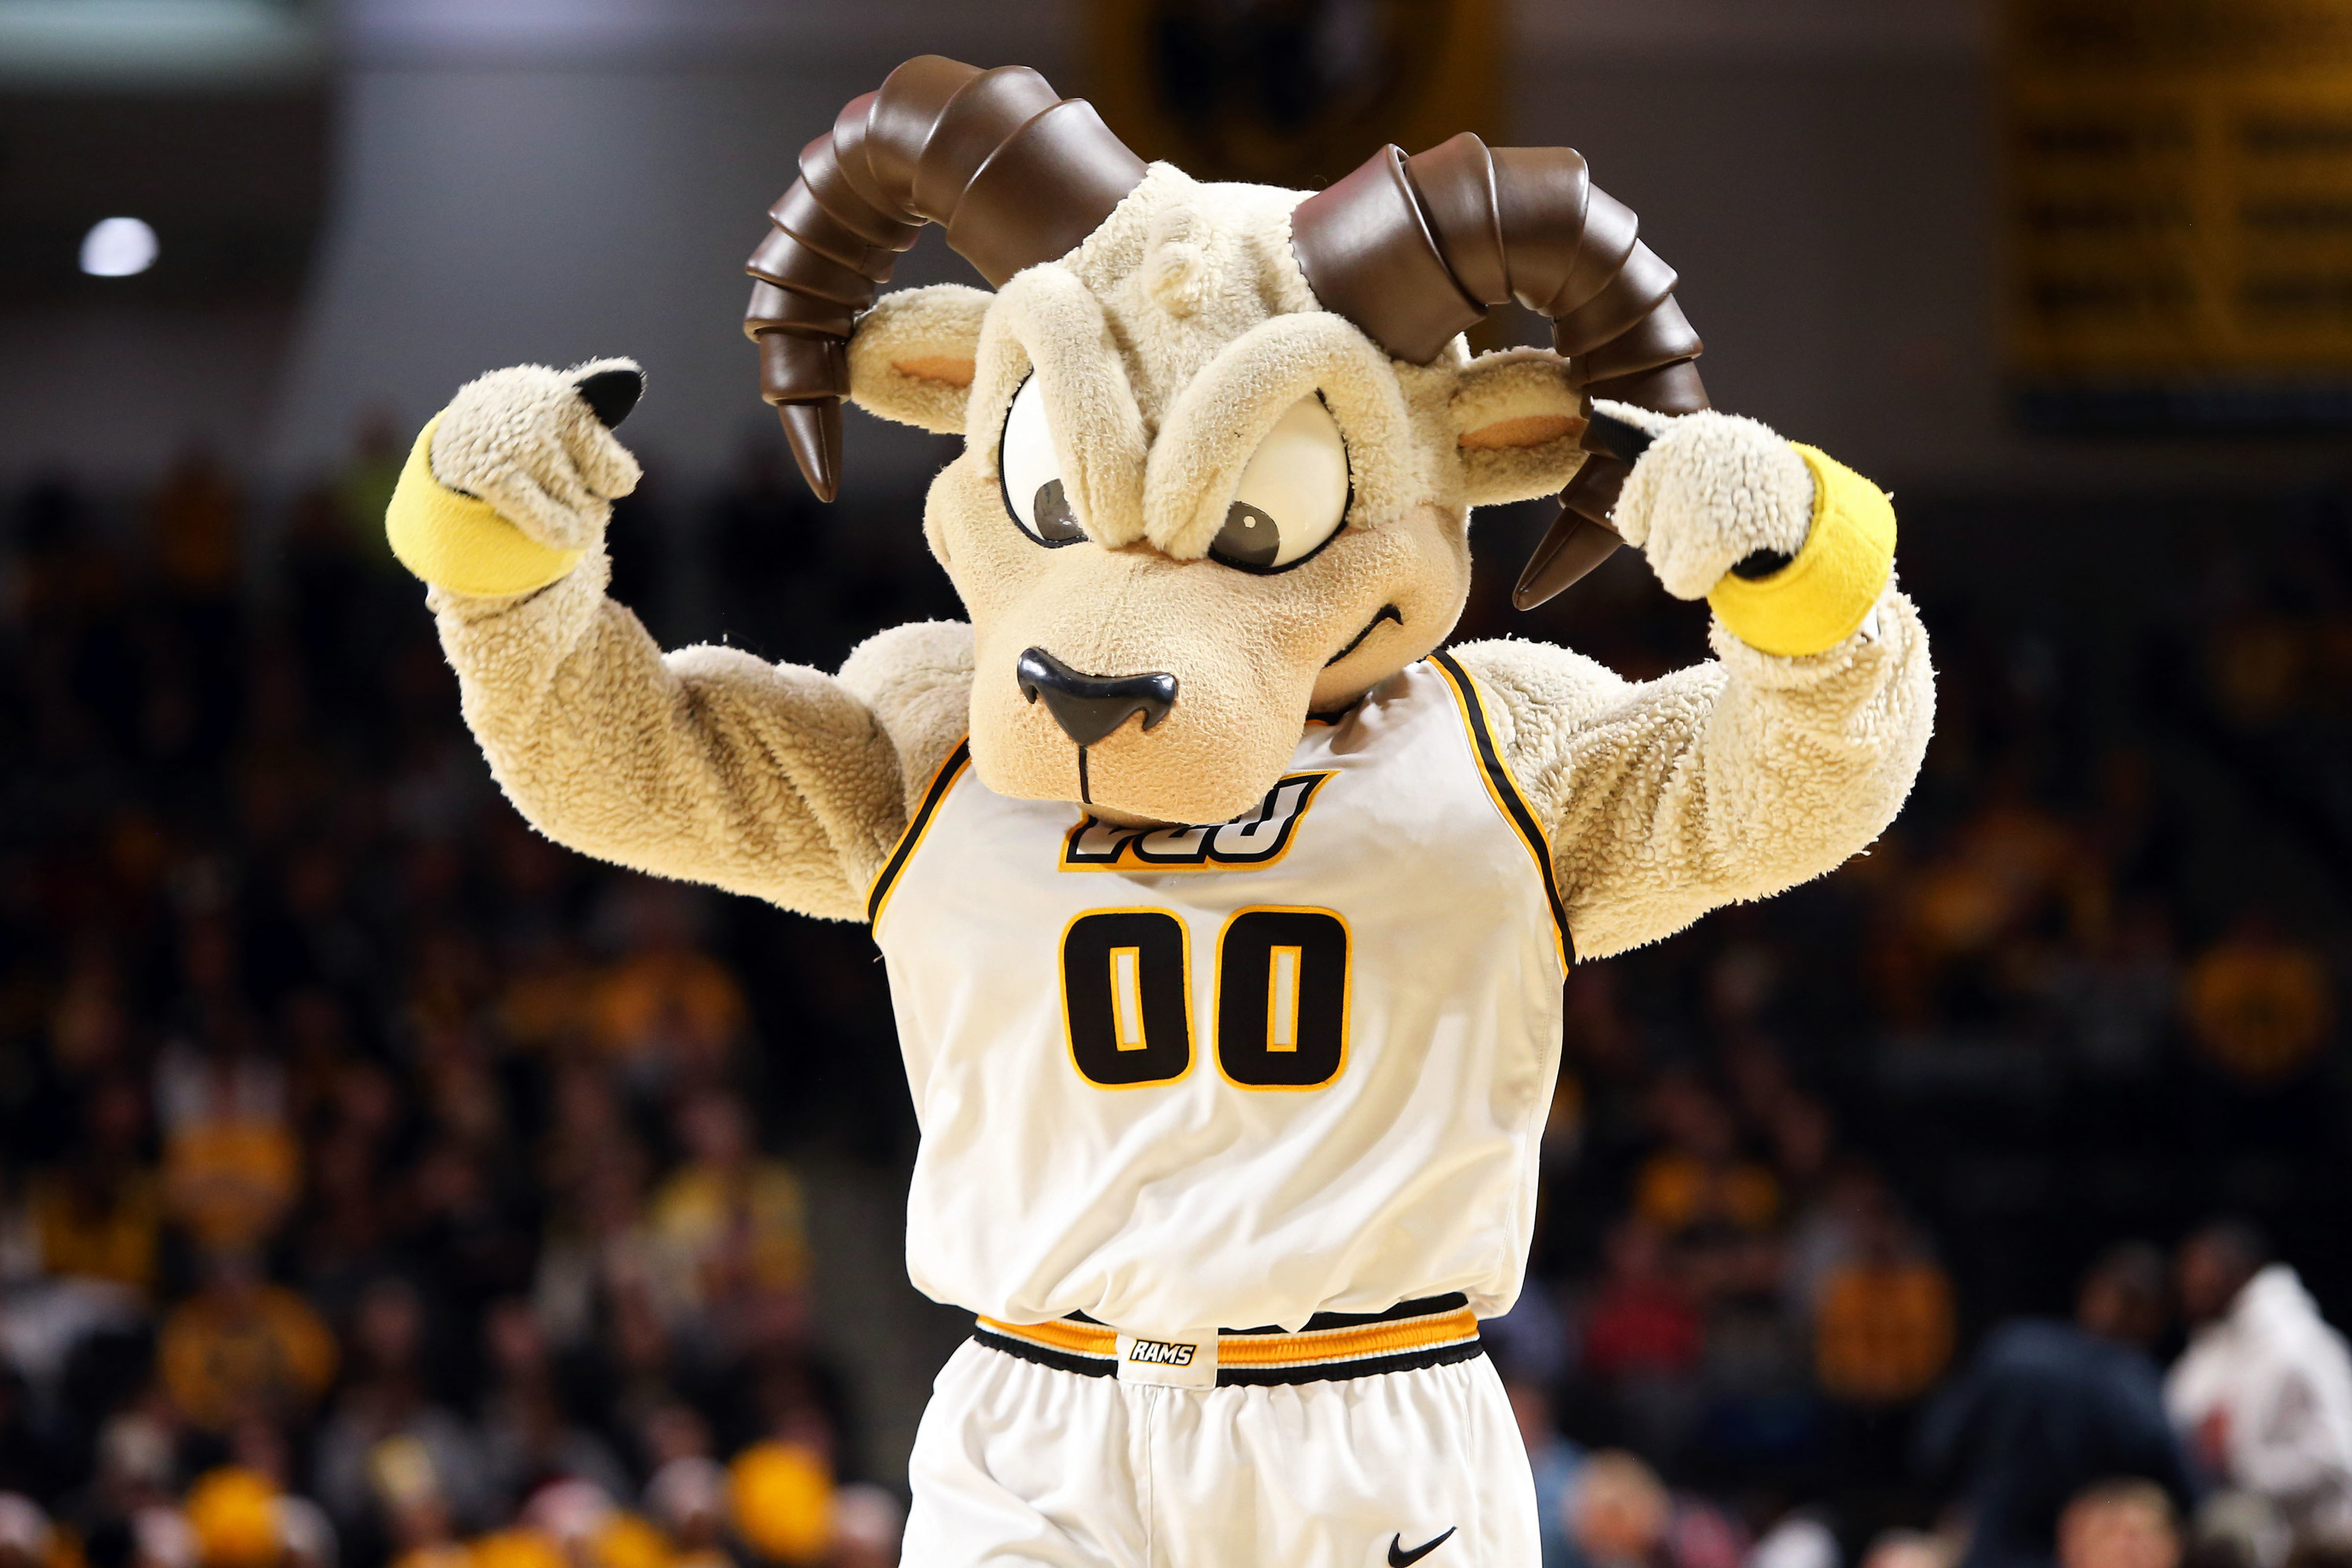 Angry-looking ram mascot in a white uniform.